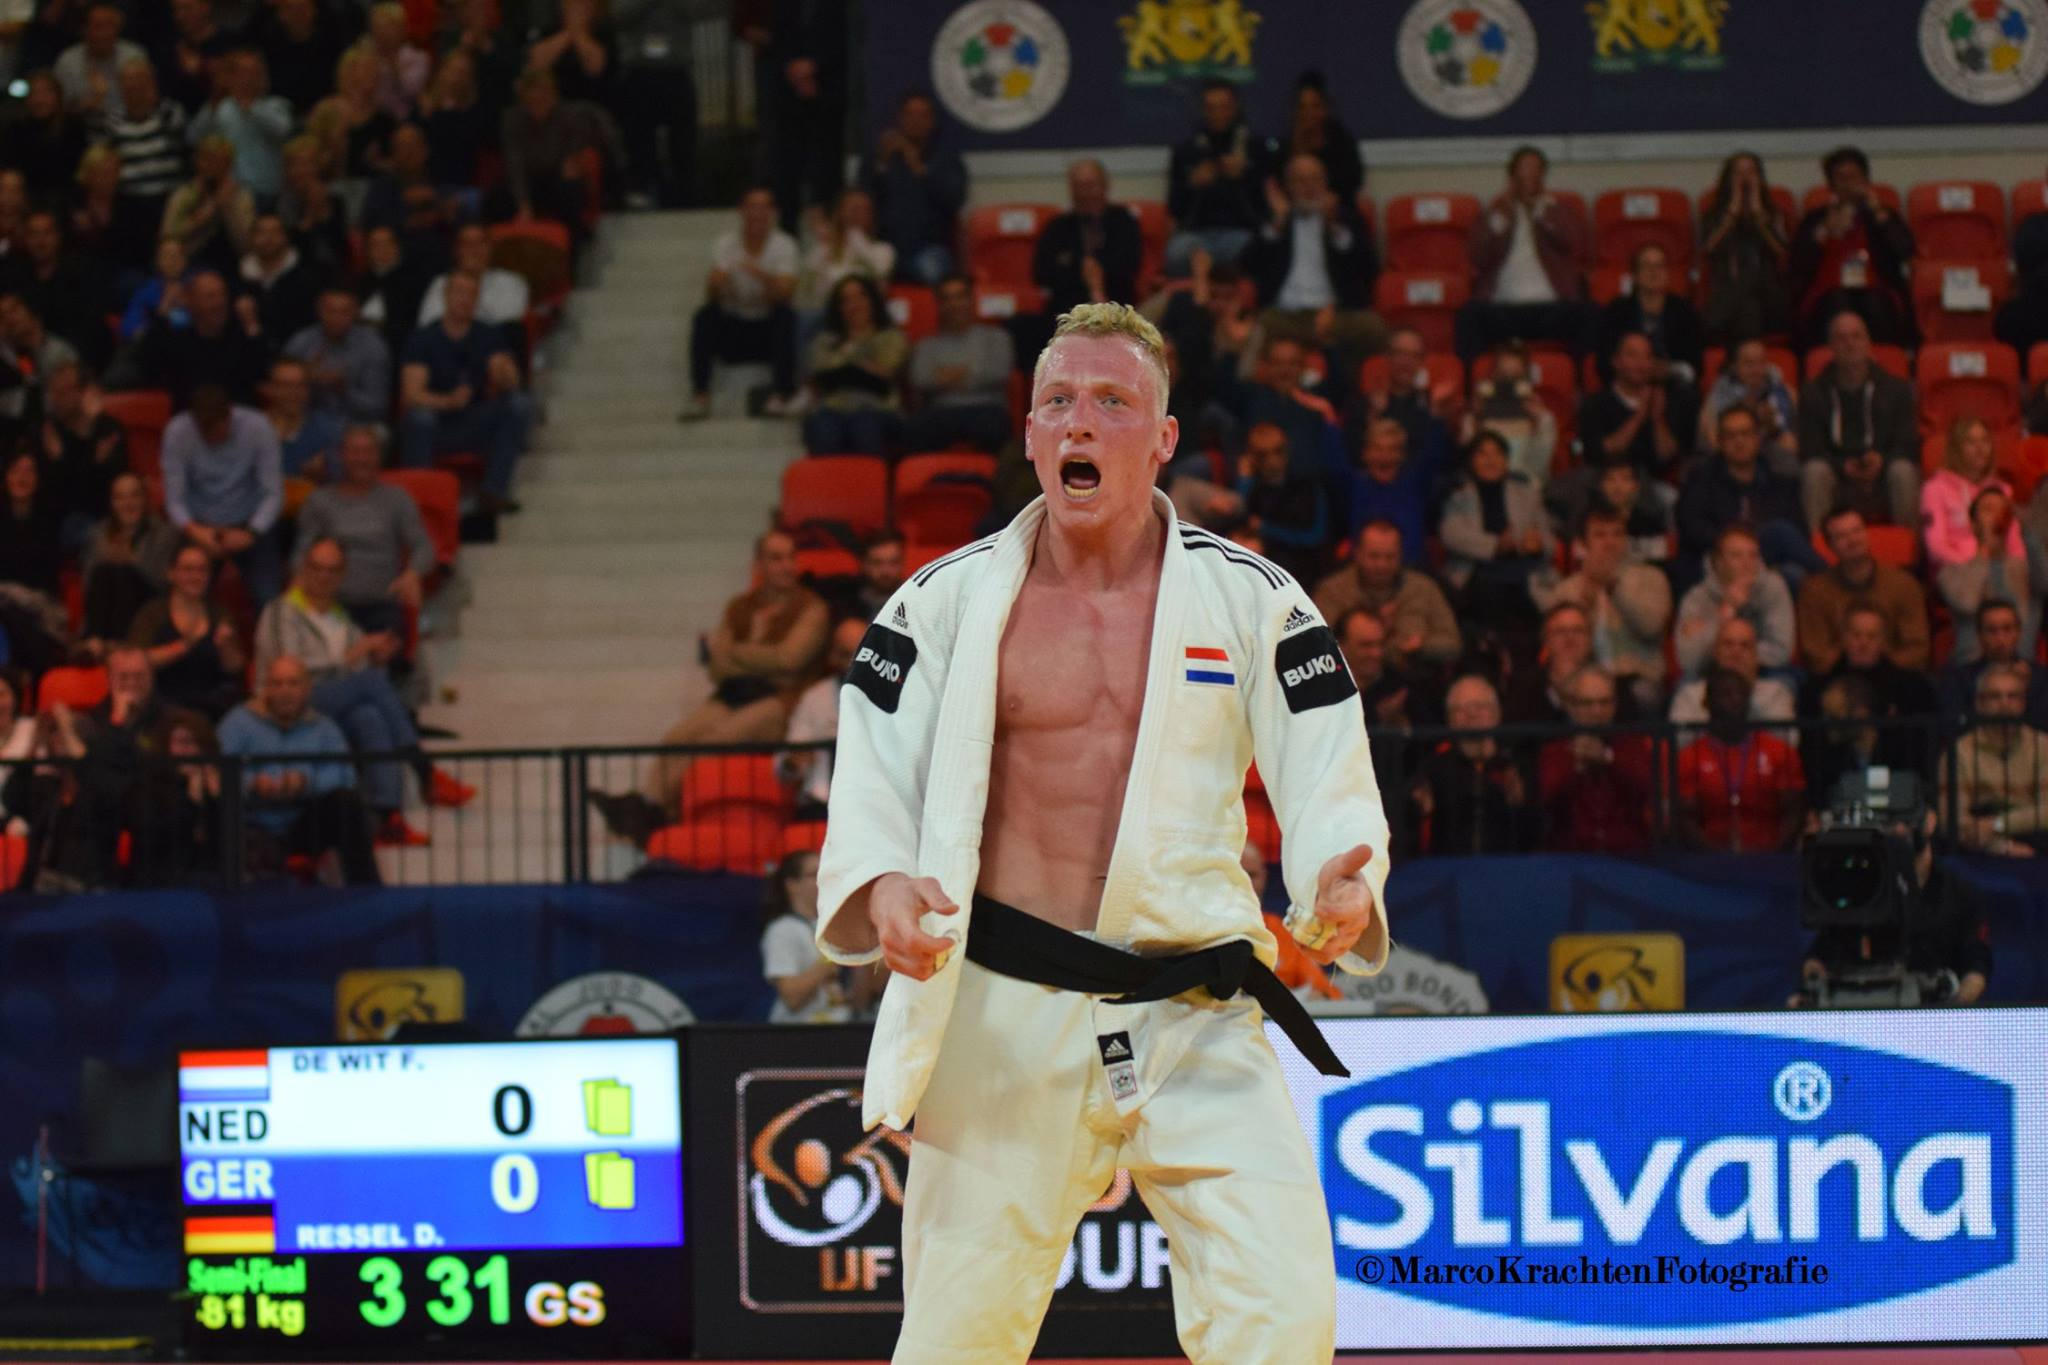 Uitgebreide fotoreportage The Hague Grand Prix 16, 17 en 18 November 2018